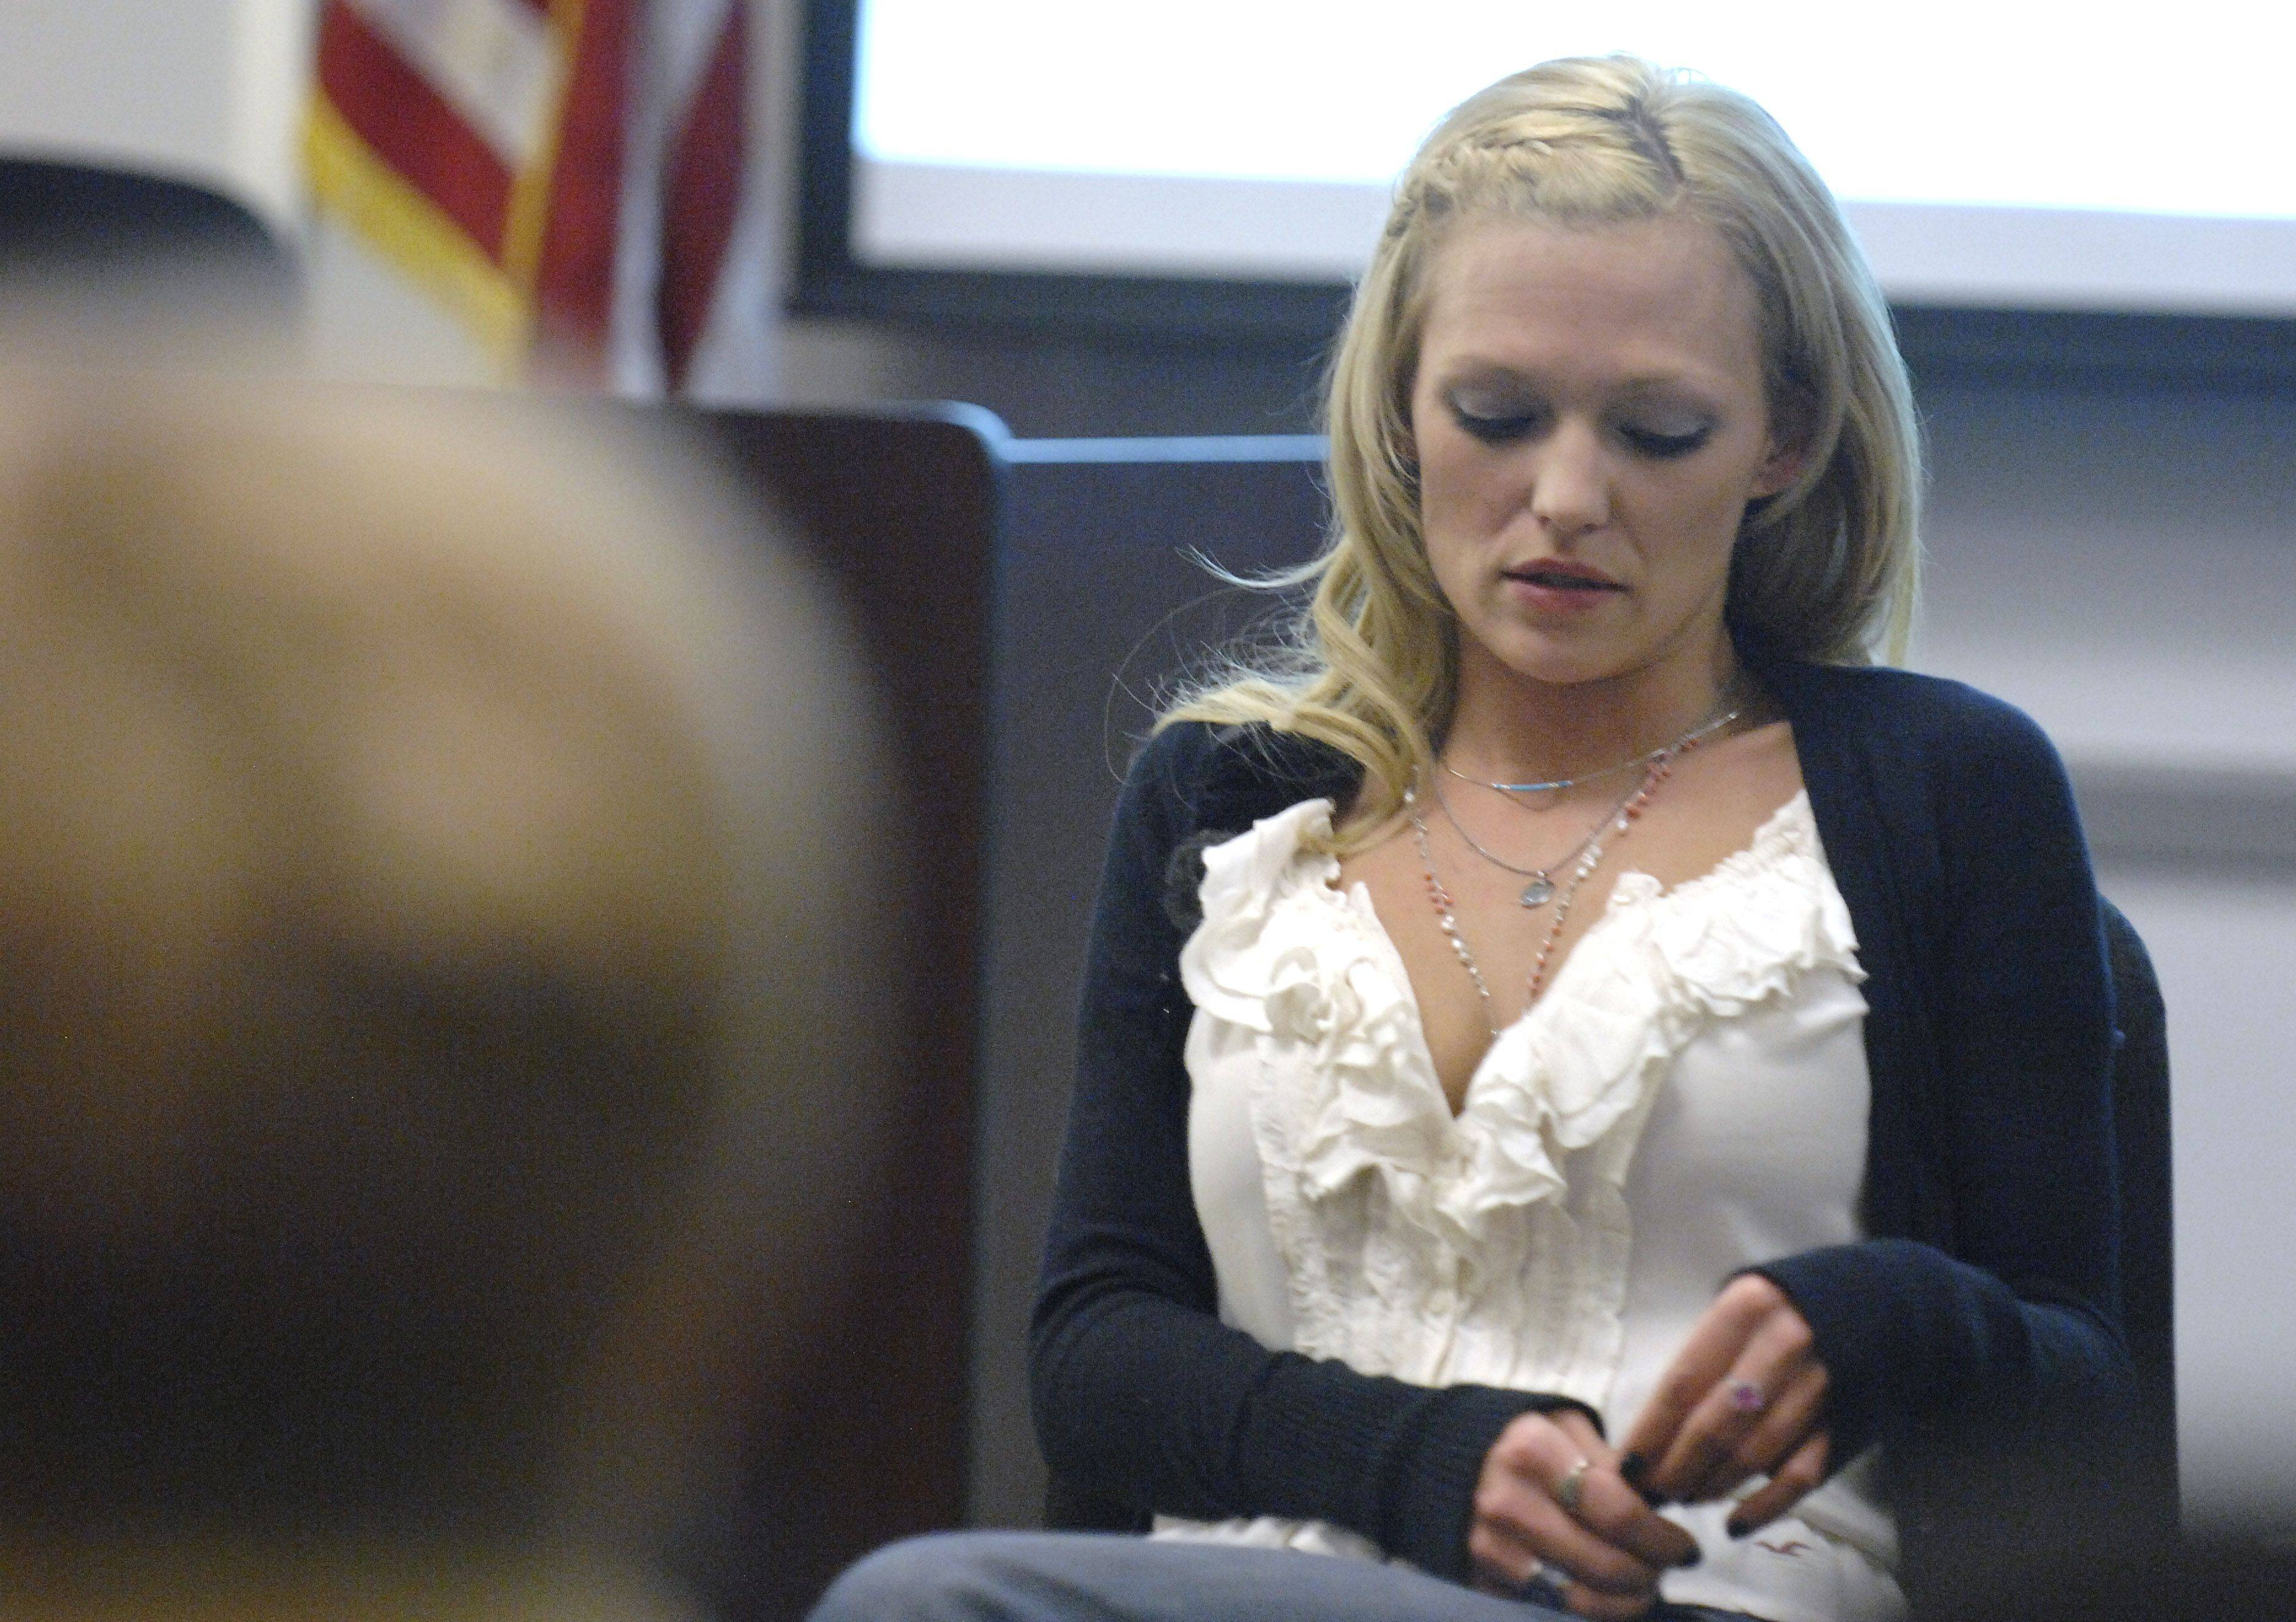 Carrie Brummel of Batavia, who has been clean of her heroin addiction for ten years, tells her story Tuesday at a Kane County Sheriff's drug and alcohol prevention program.